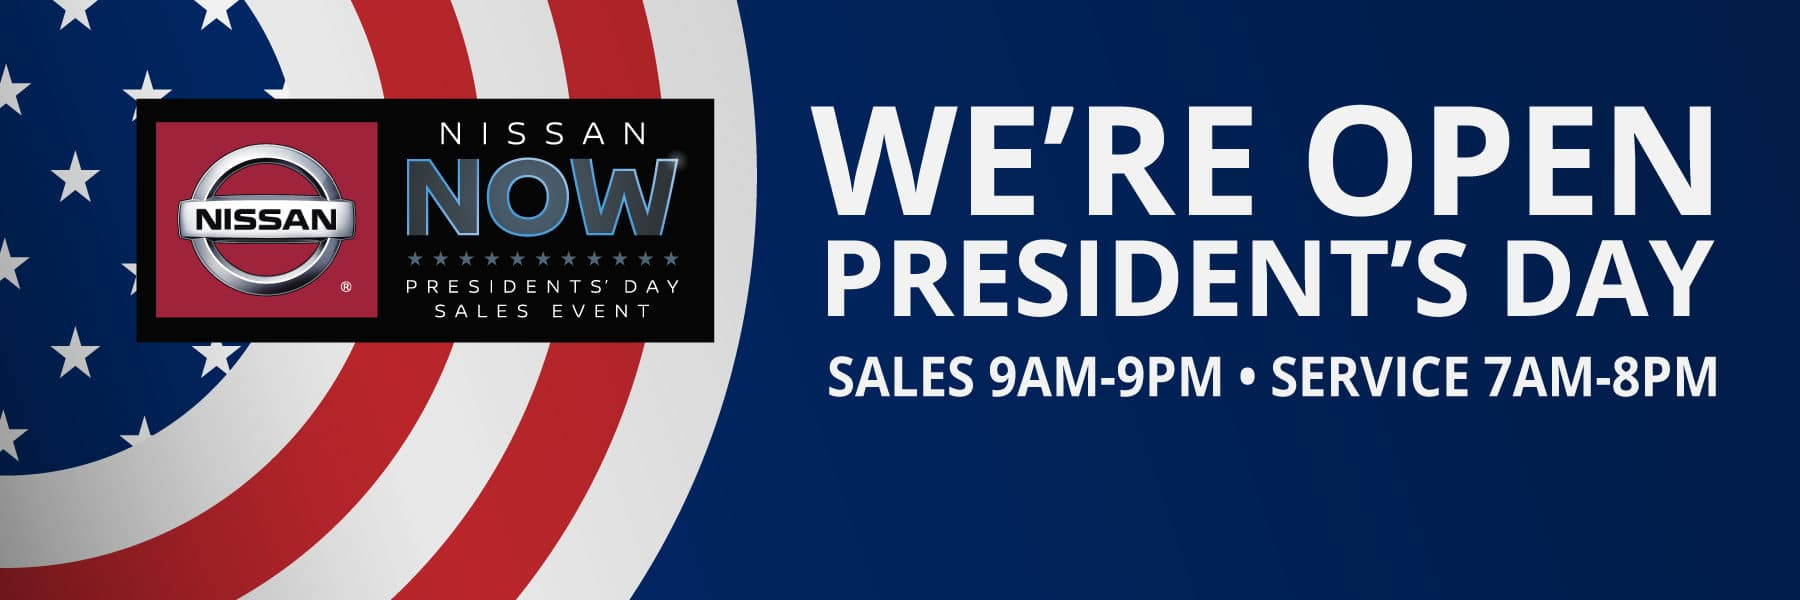 President's Day Sale at Berman Nissan of Chicago